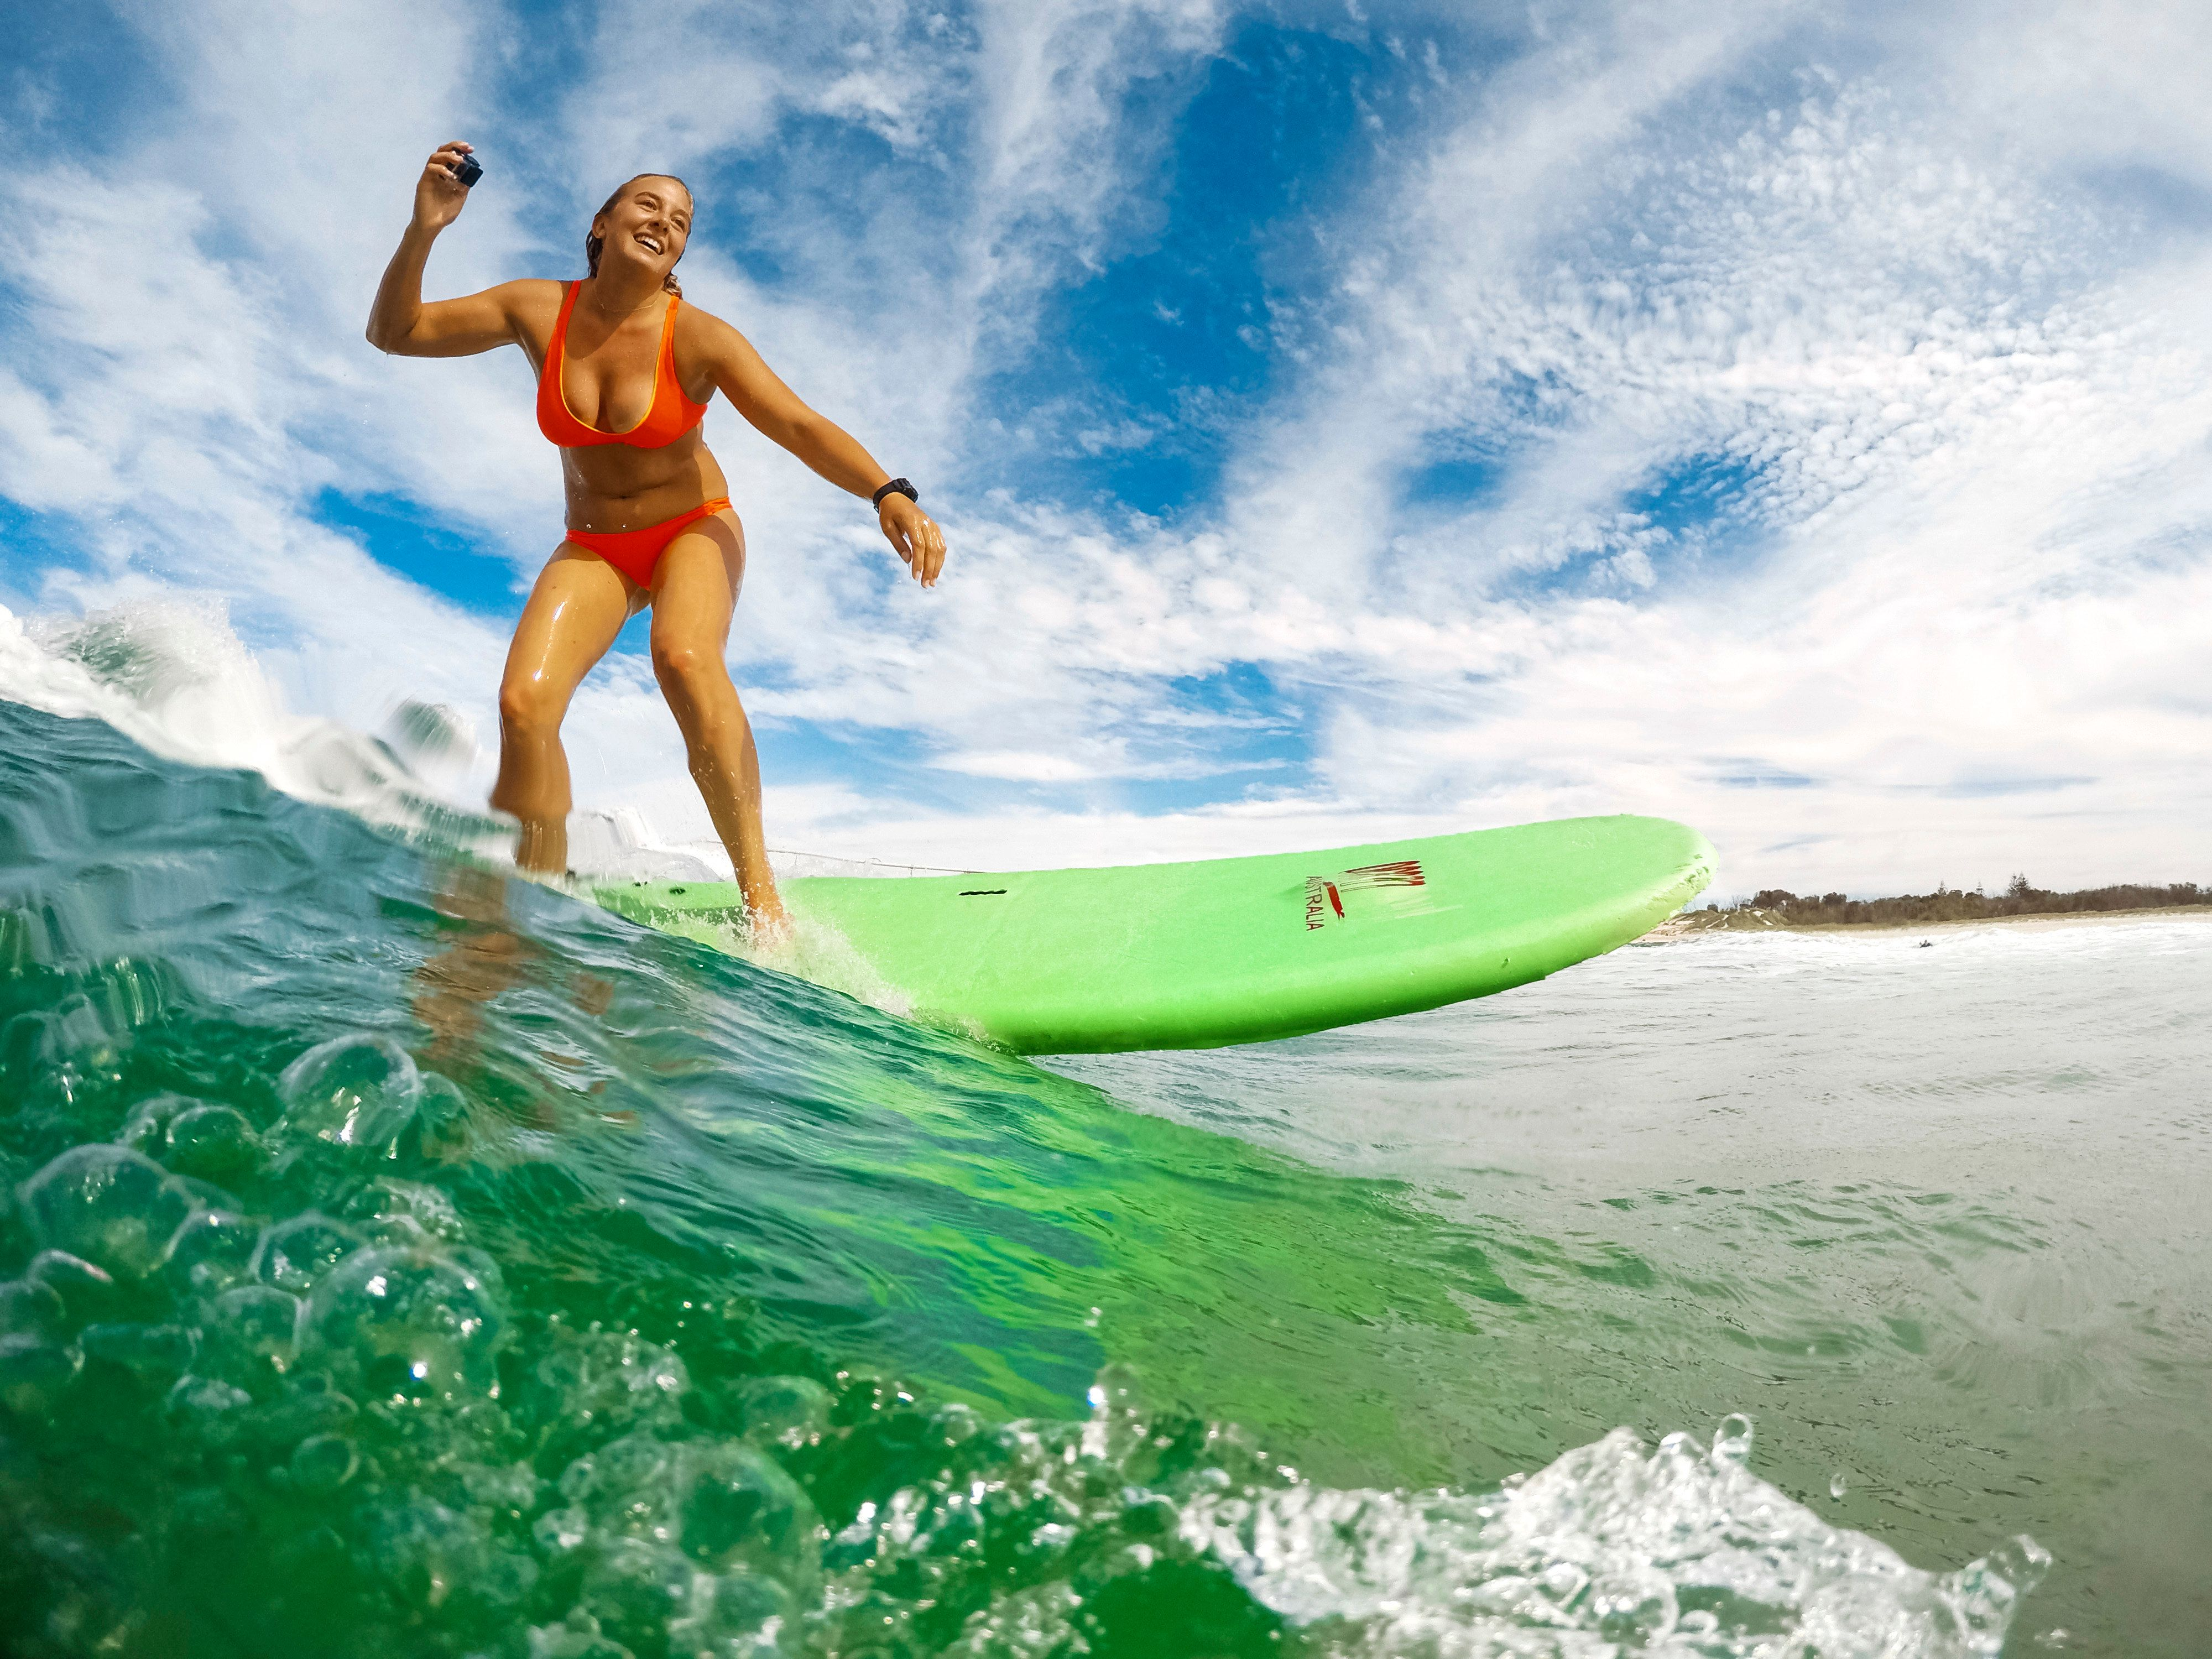 Professional standup paddler Izzi Gomez catches a wave in the Gold Coast,